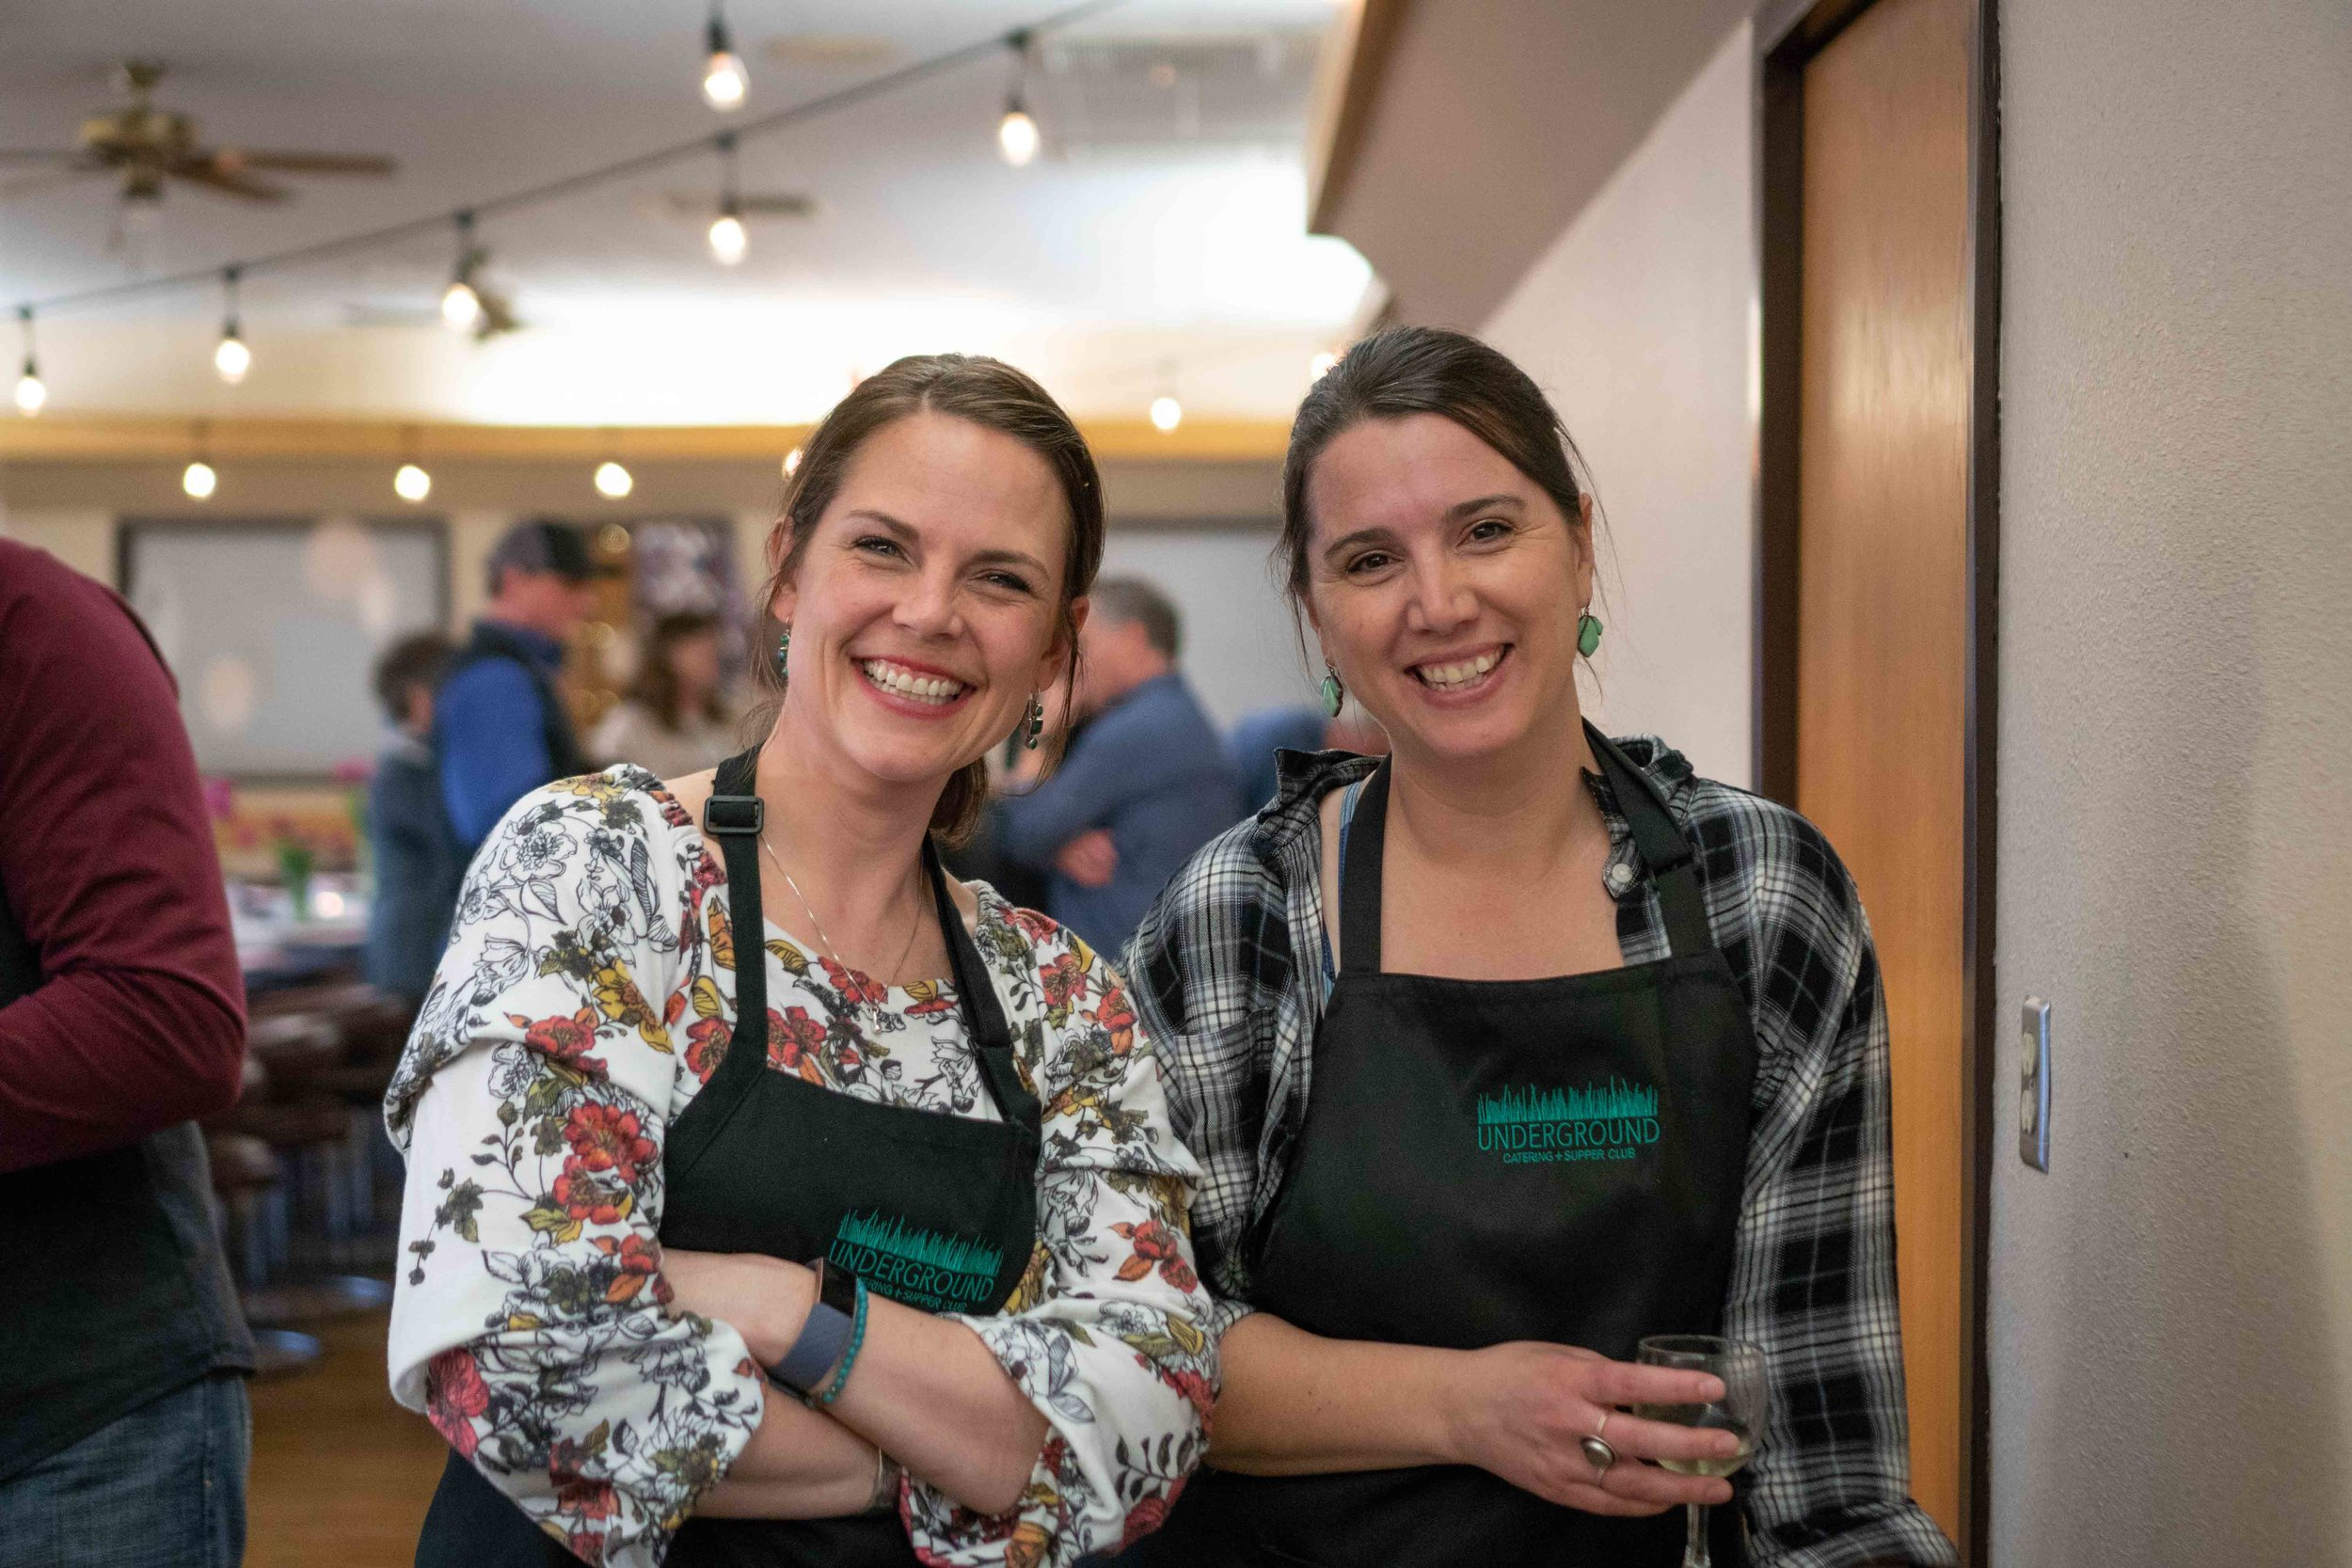 - Our friendship grew out of an obsession with food. From tastes and flavors, to science and cooking, we can't get enough on the topic of food. We want to offer our skills and help you taste the world.Ashley + Adrienne